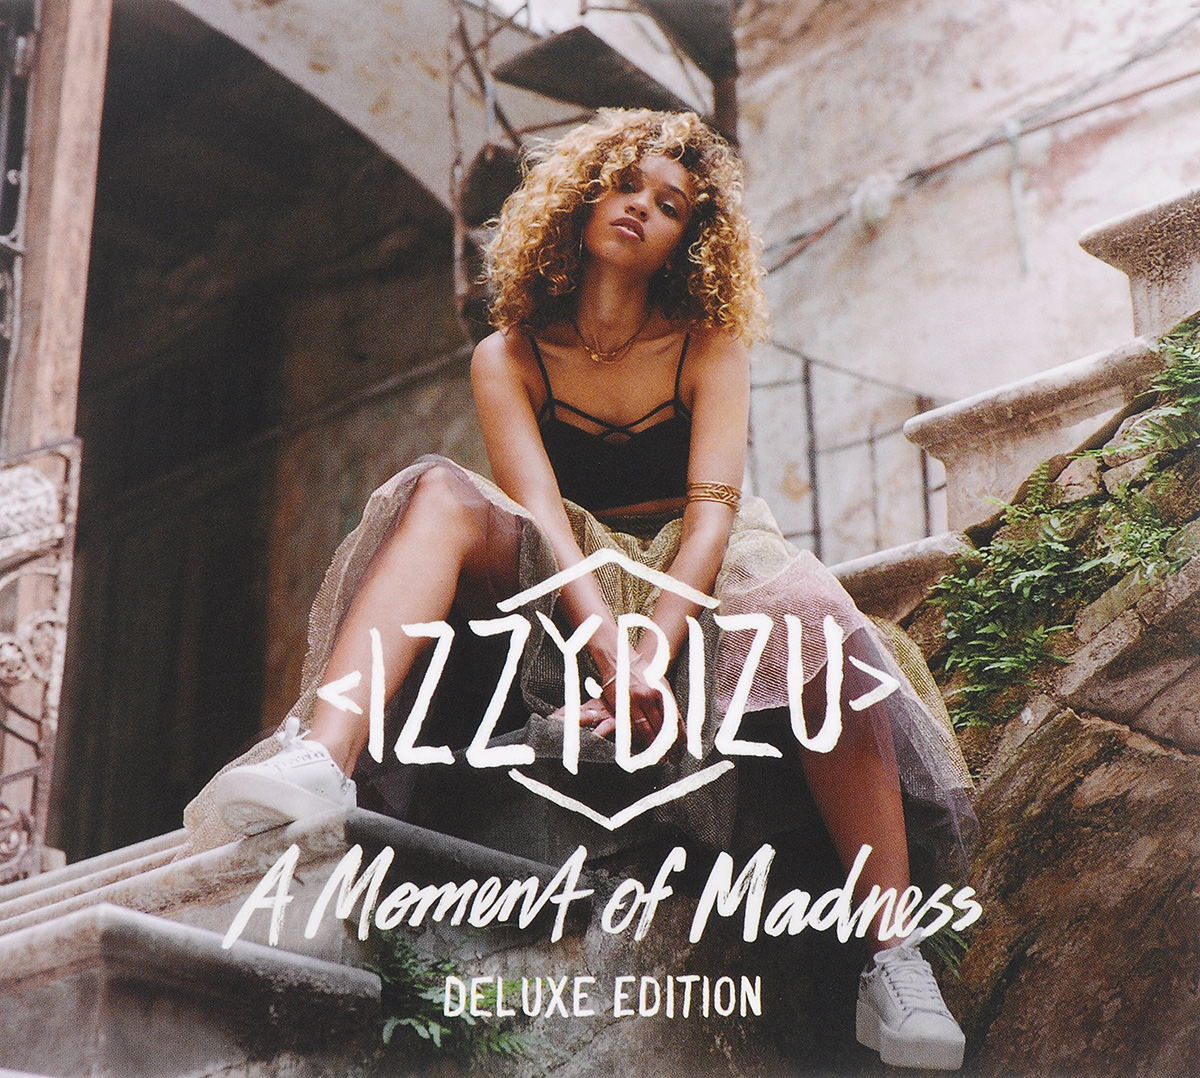 Izzy Bizu Izzy Bizu. A Moment Of Madness. Deluxe Edition roxy music roxy music the studio albums limited edition 8 lp